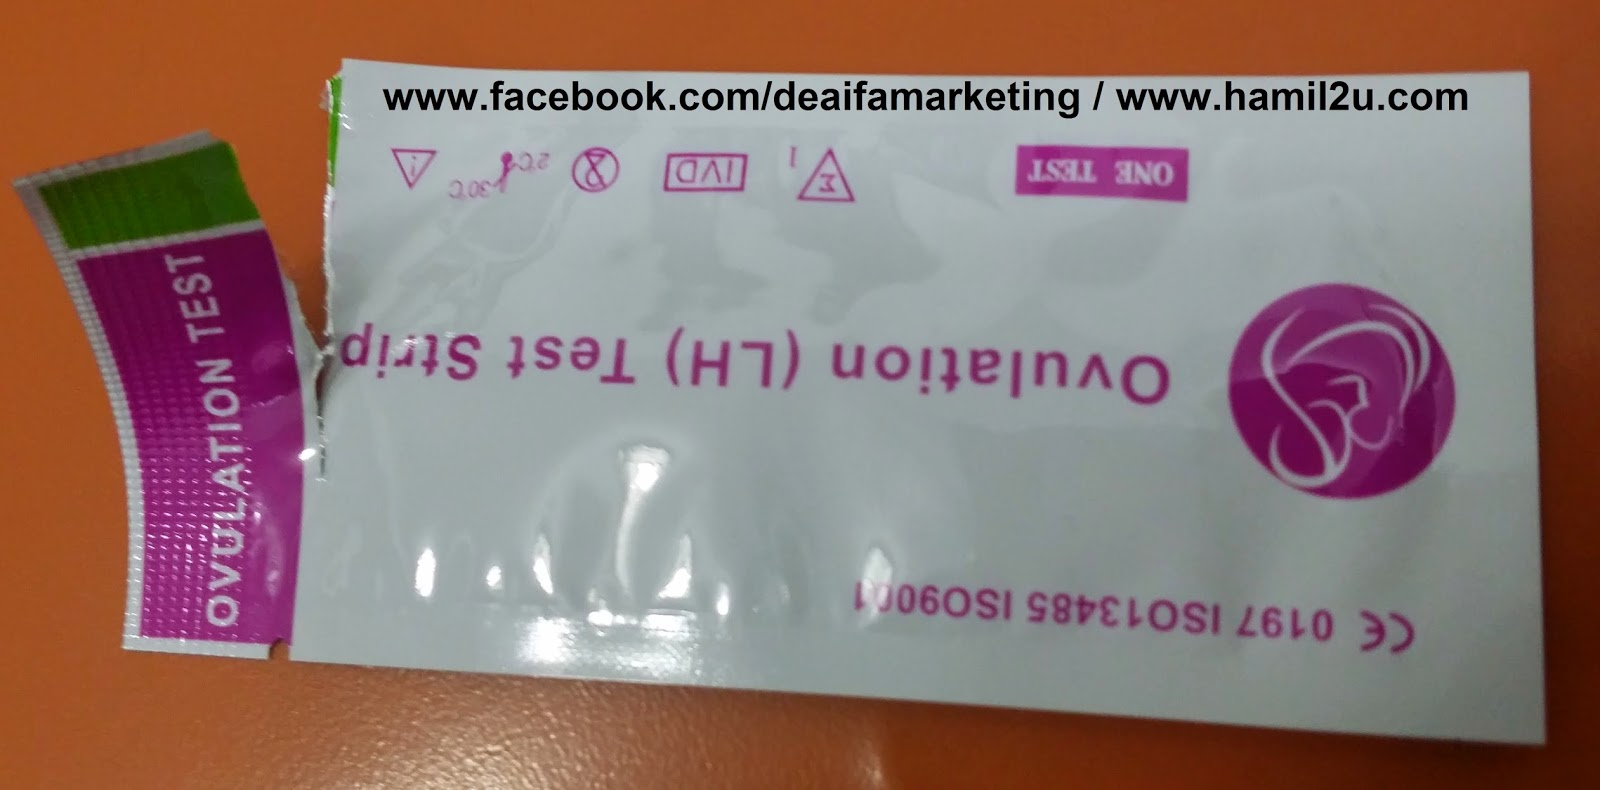 ovulation test kit murah, opk, pregnancy test murah, ovulation predictor kit, cheapest, rm1, borong,deaifa marketing, ovulation test, hamil2u.com, opk deaifa, upt deaifa, 60sen